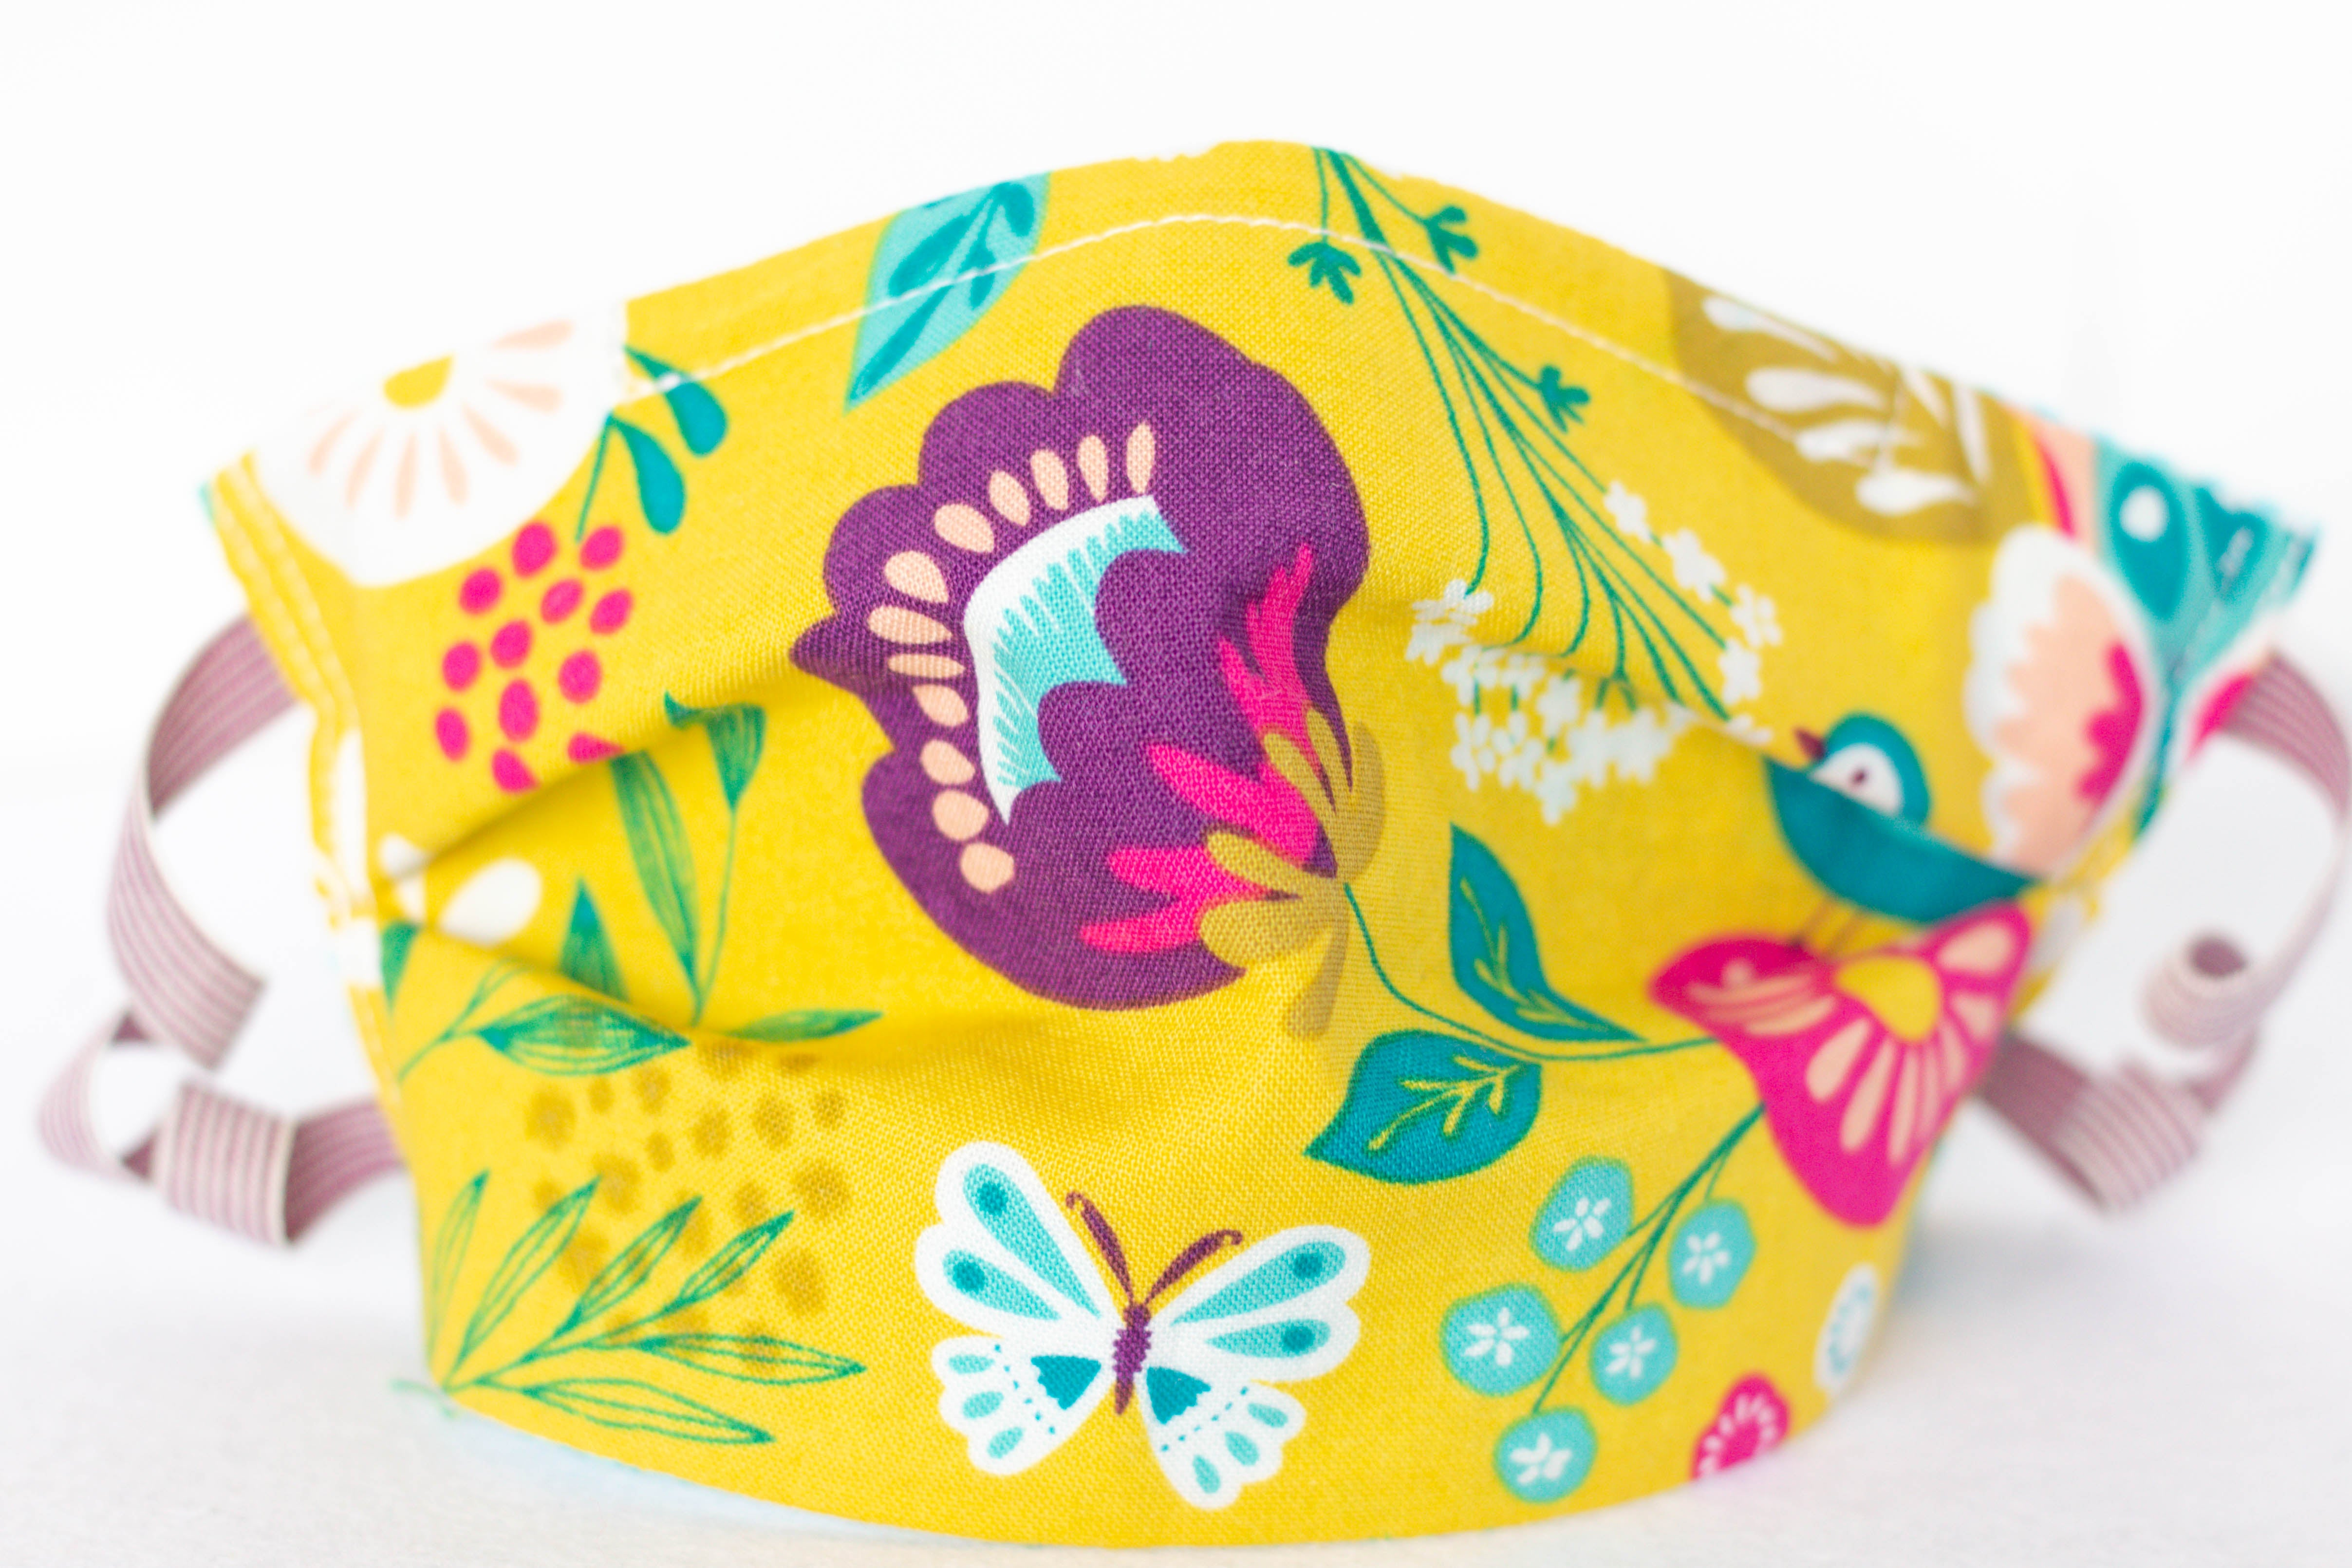 kids face mask yellow, purple, teal, flowers with butterflies and birds